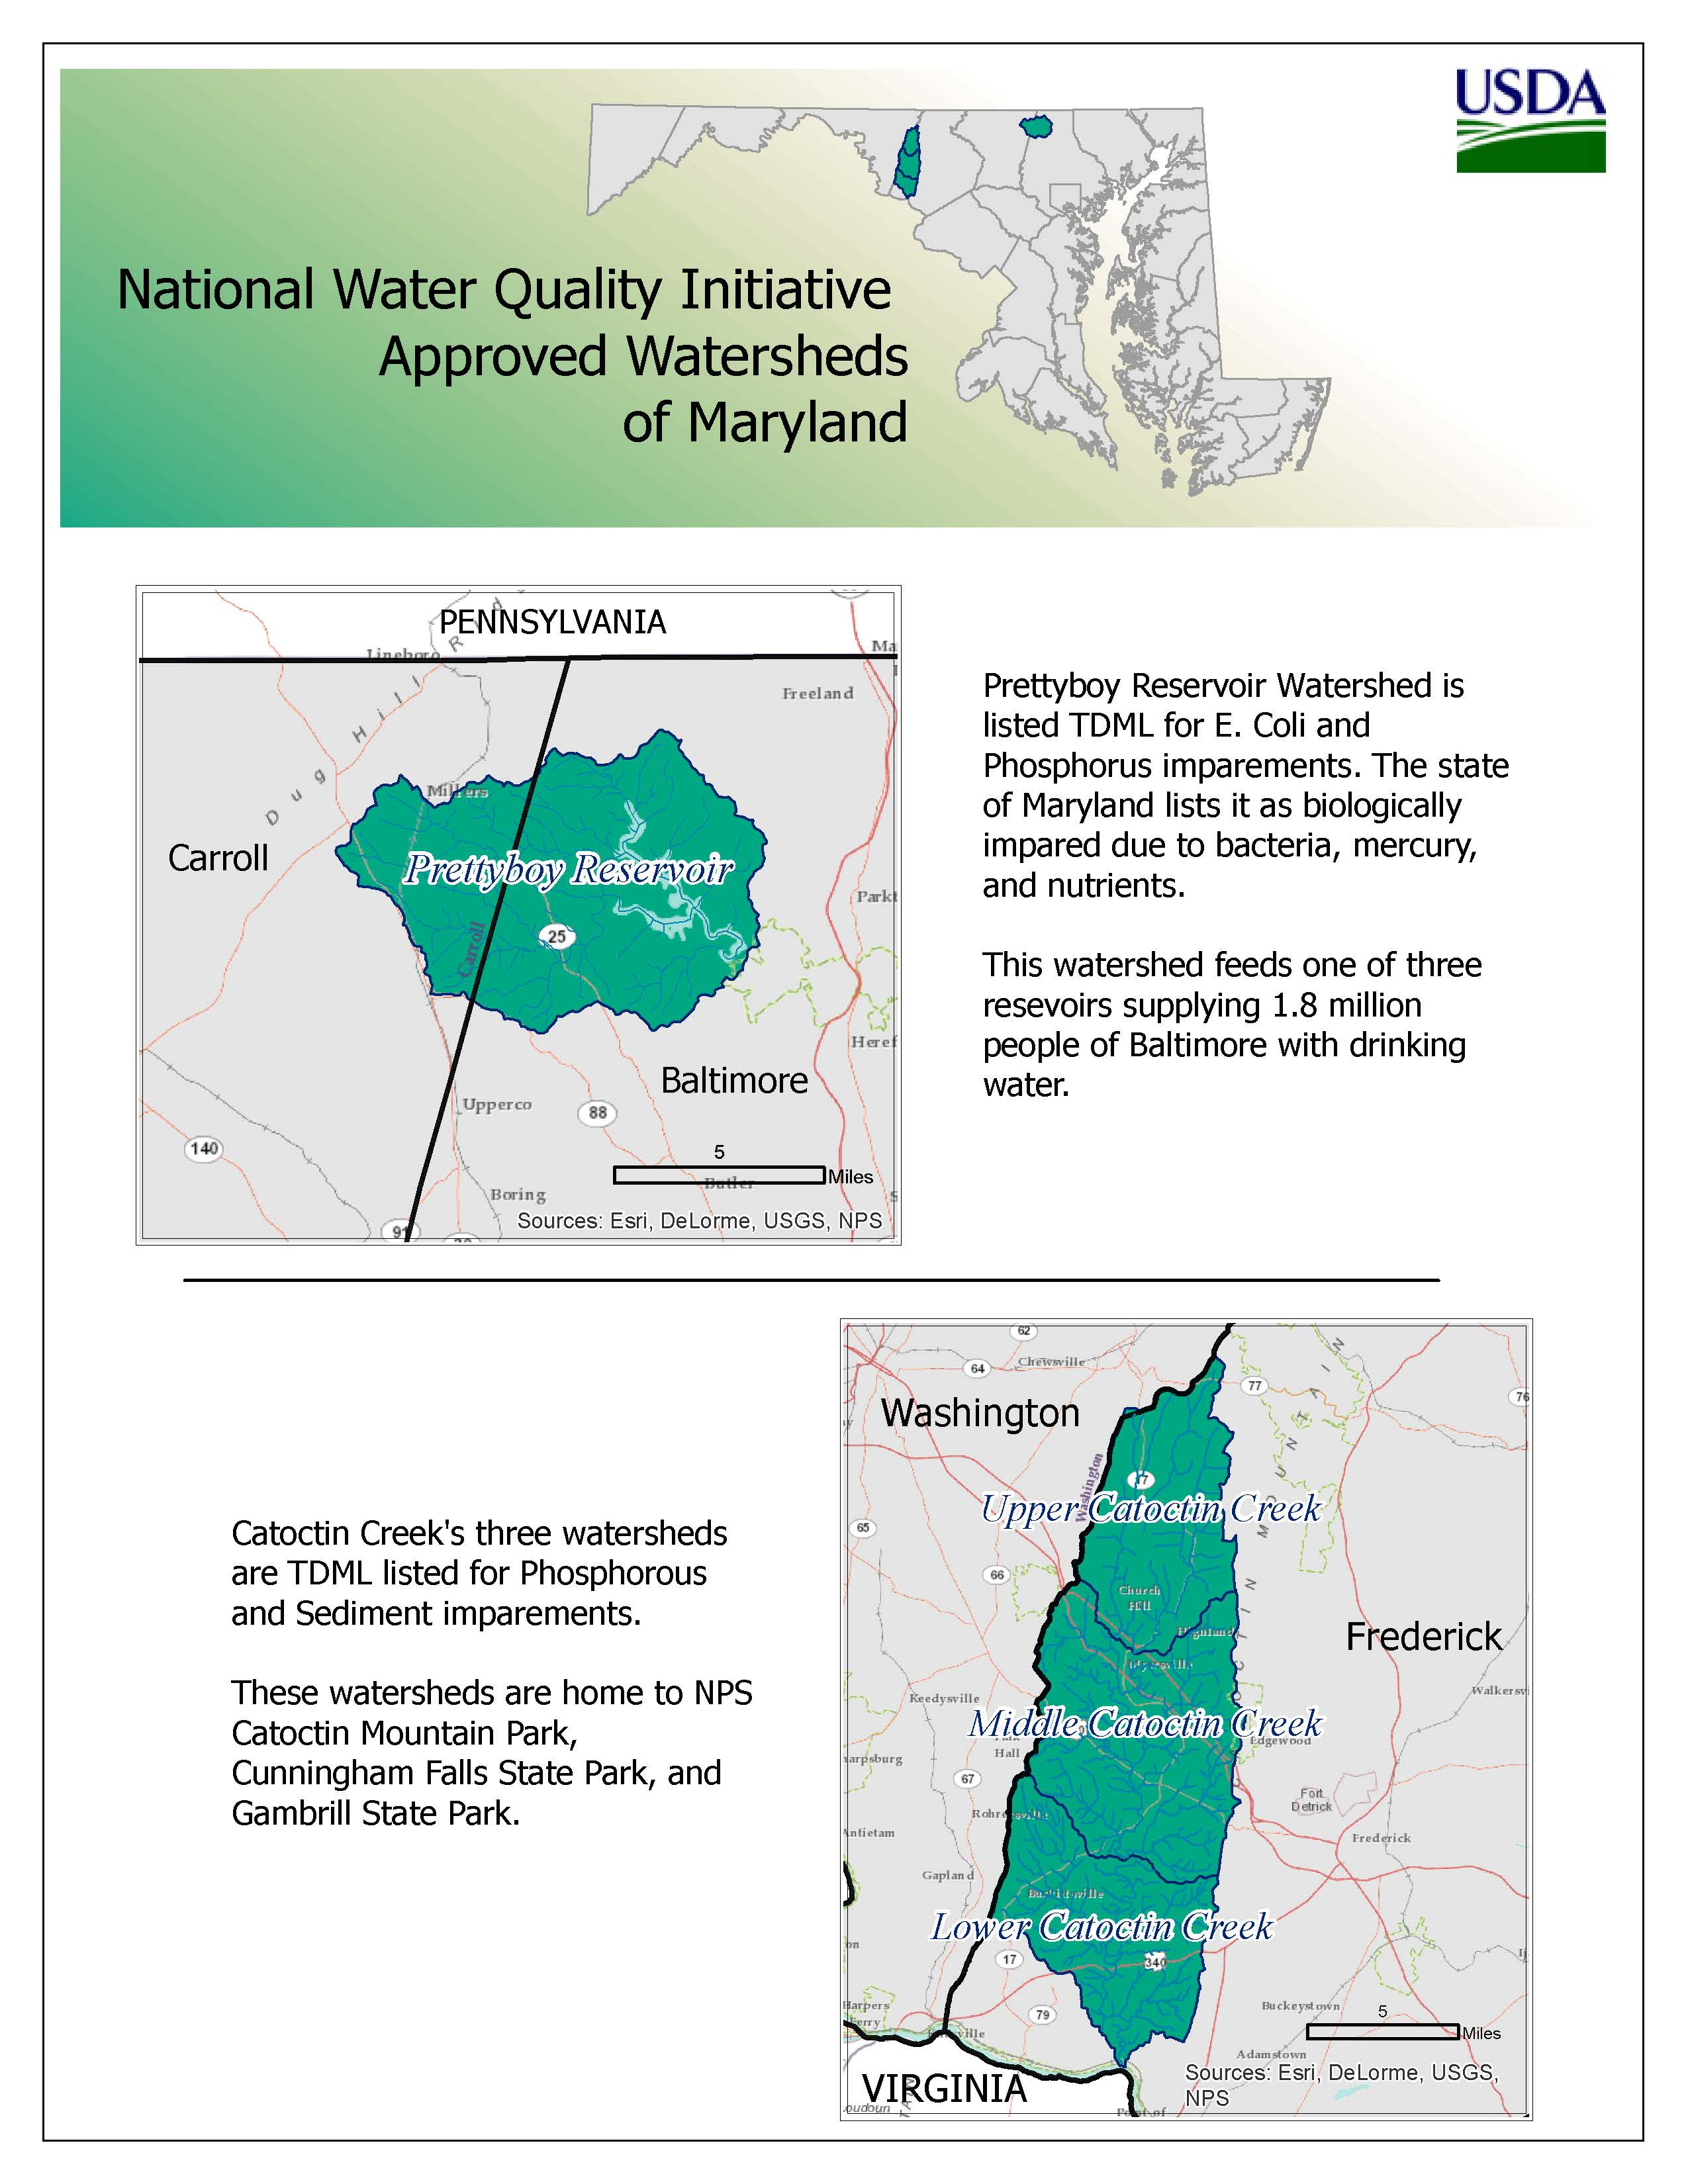 Map of selected watersheds in the National Water Quality Initiative